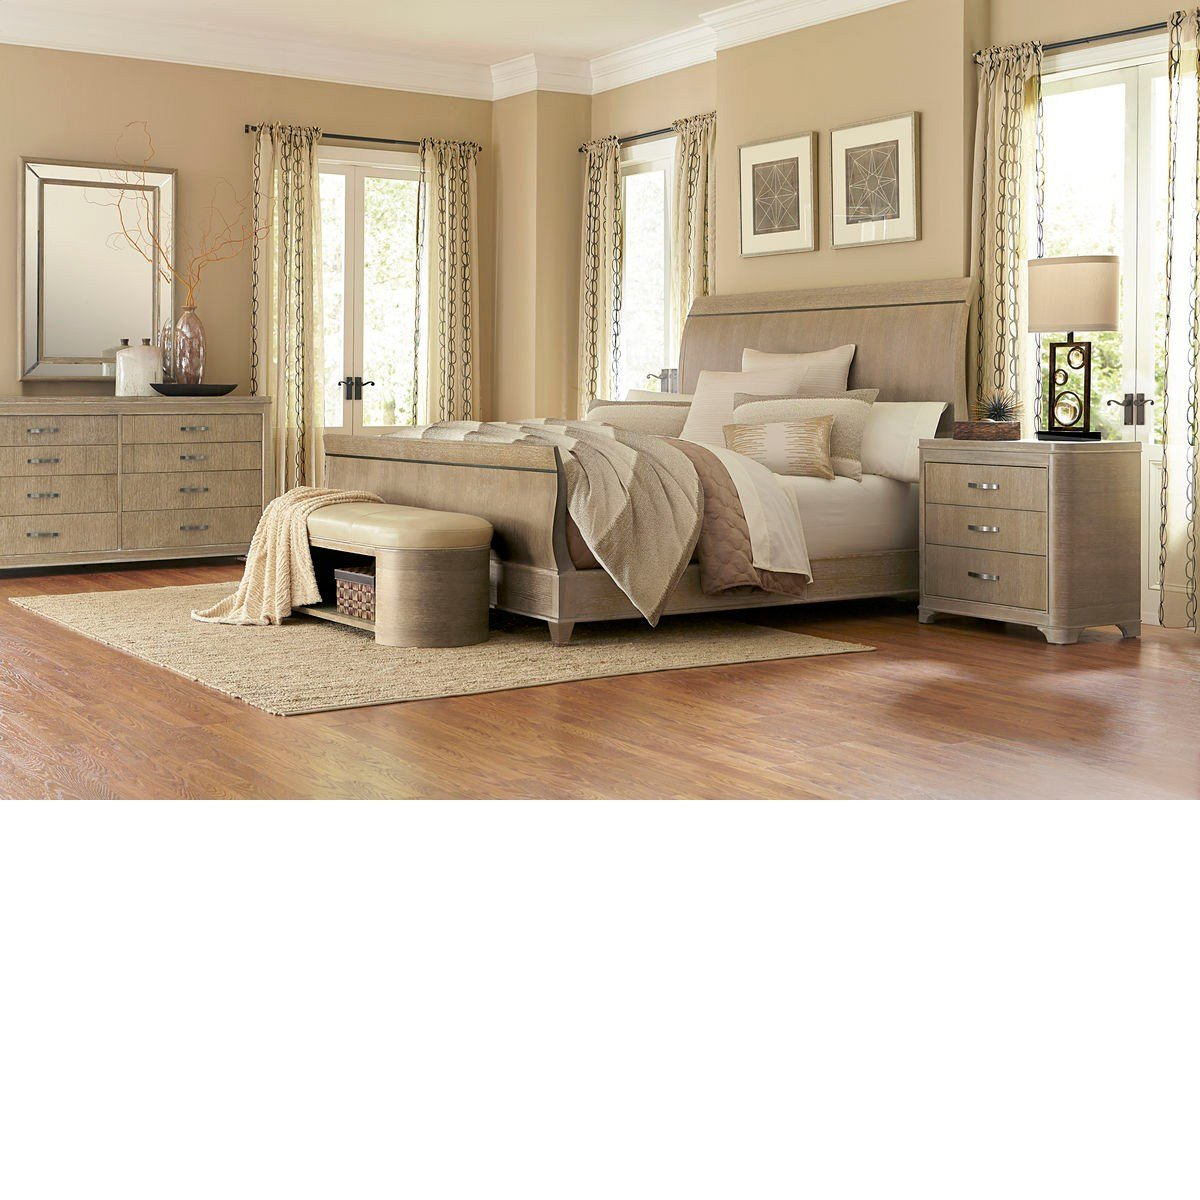 Best The Dump Bedroom Furniture Buyloxitane Com With Pictures